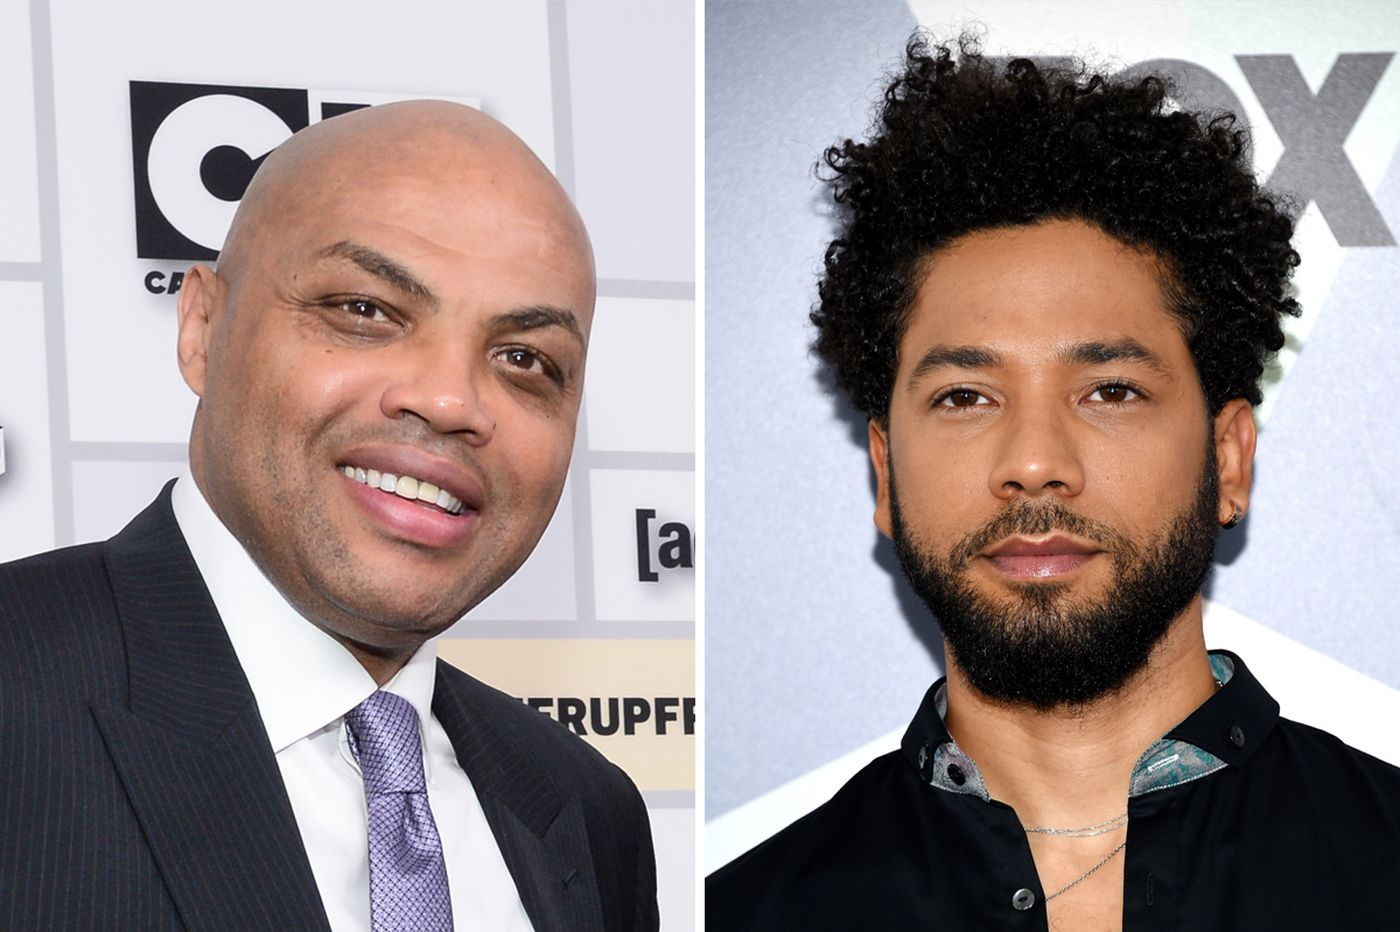 Charles Barkley went off on 'Empire' star Jussie Smollett: 'Get cash, man'